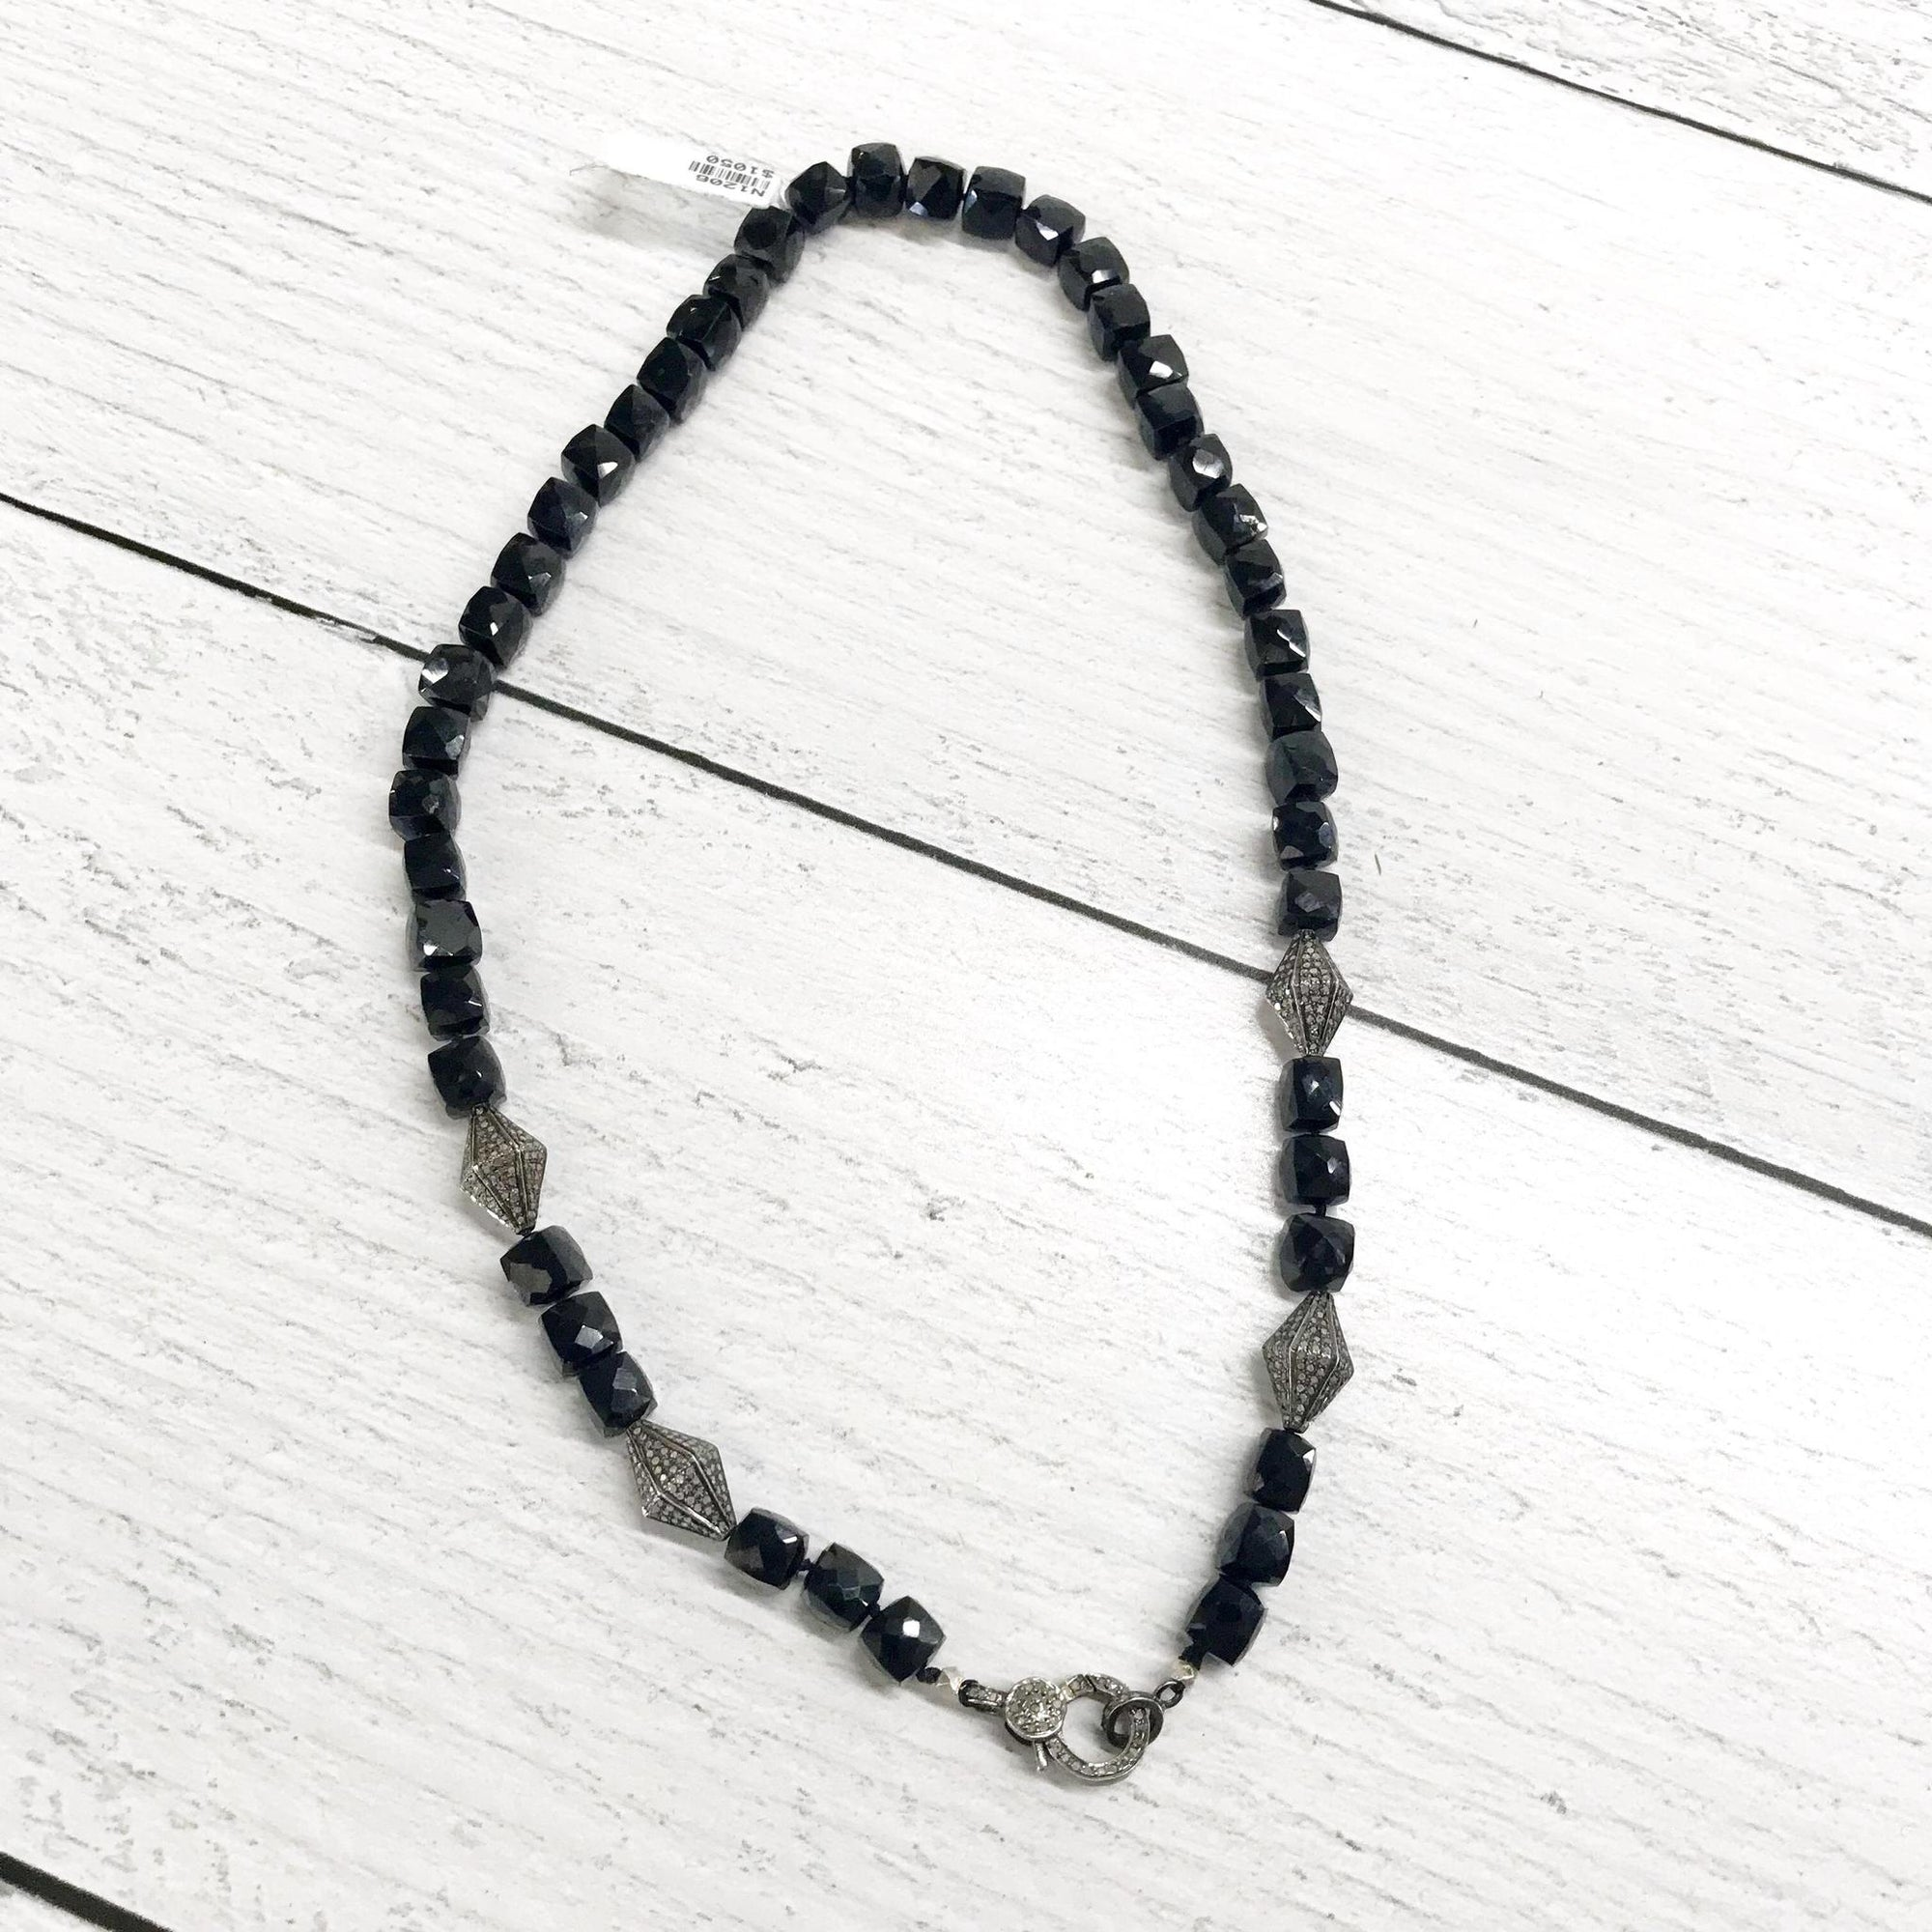 Black Spinel Necklace